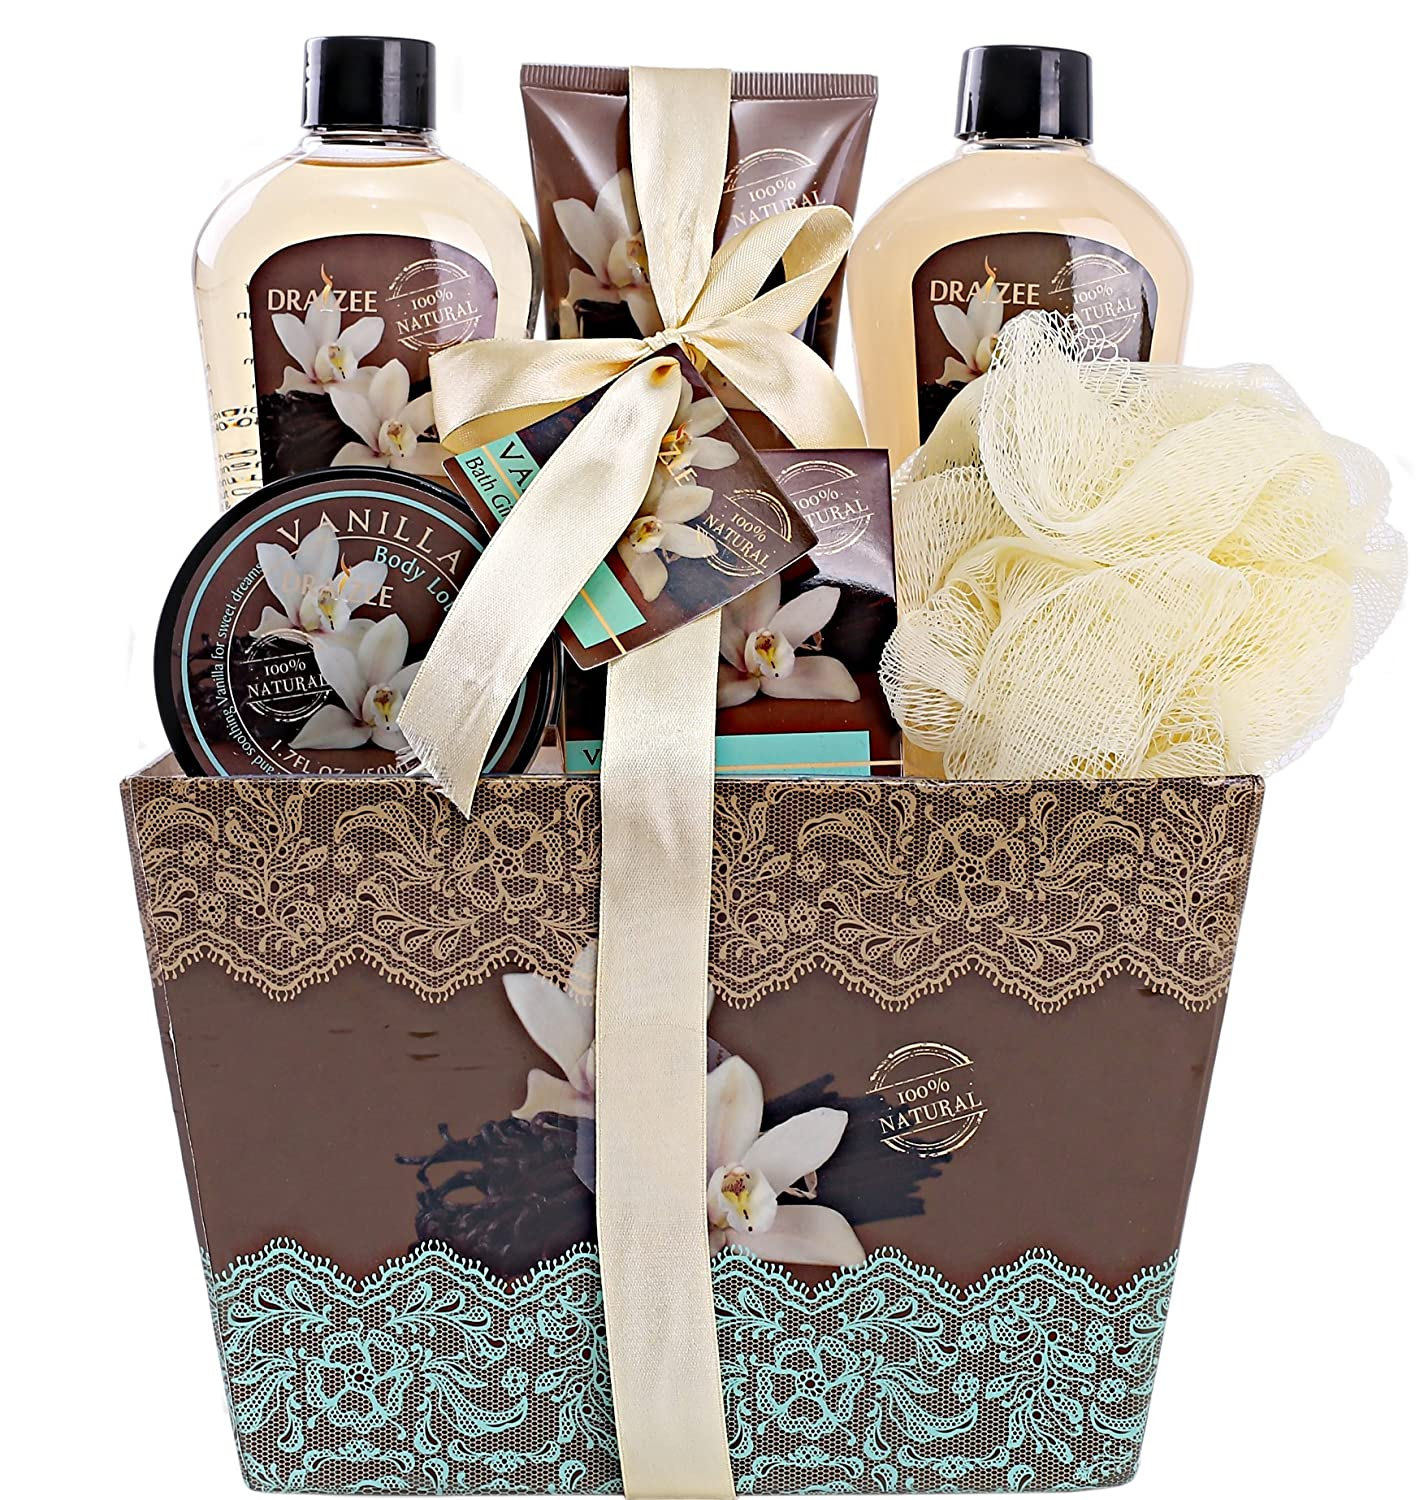 """Spa Basket for Women w/Refreshing """"Seductive Vanilla"""" Fragrance by Draizee- #1 Best Gift for Christmas – Luxury Bath & Body Set Includes 100% Natural Cream's Lotion's & Much More!"""